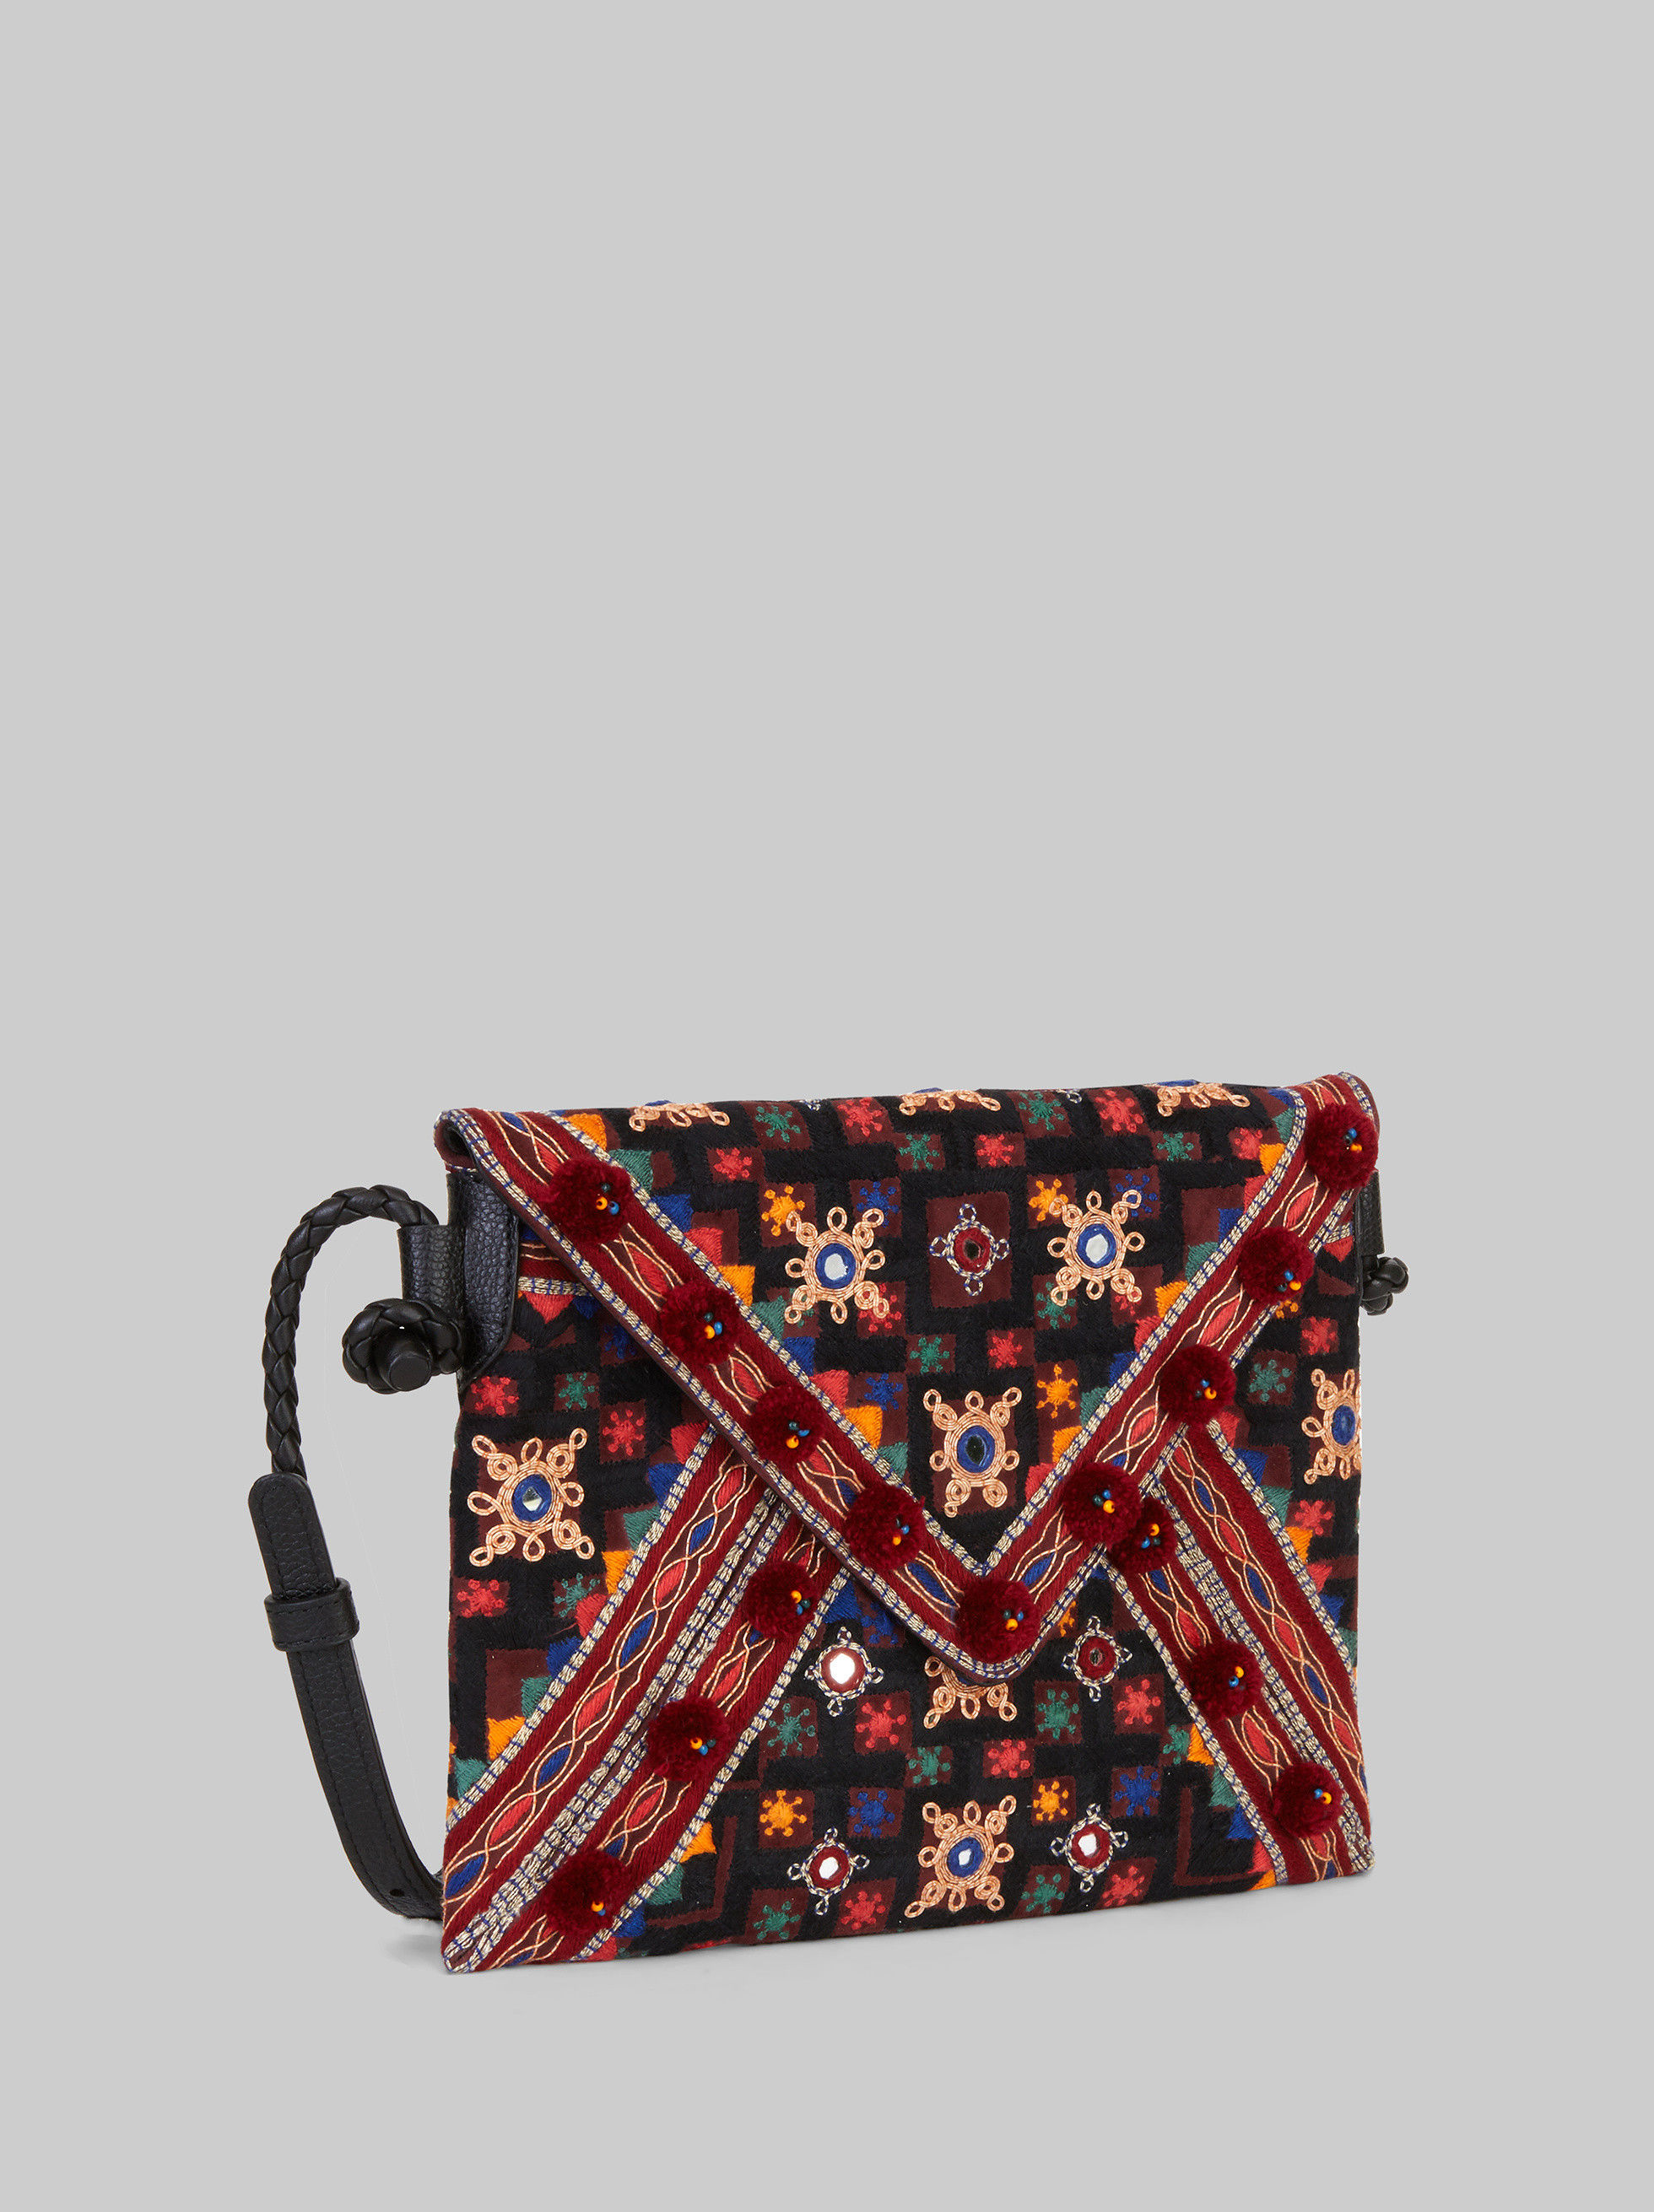 GOA BAG WITH EMBROIDERY